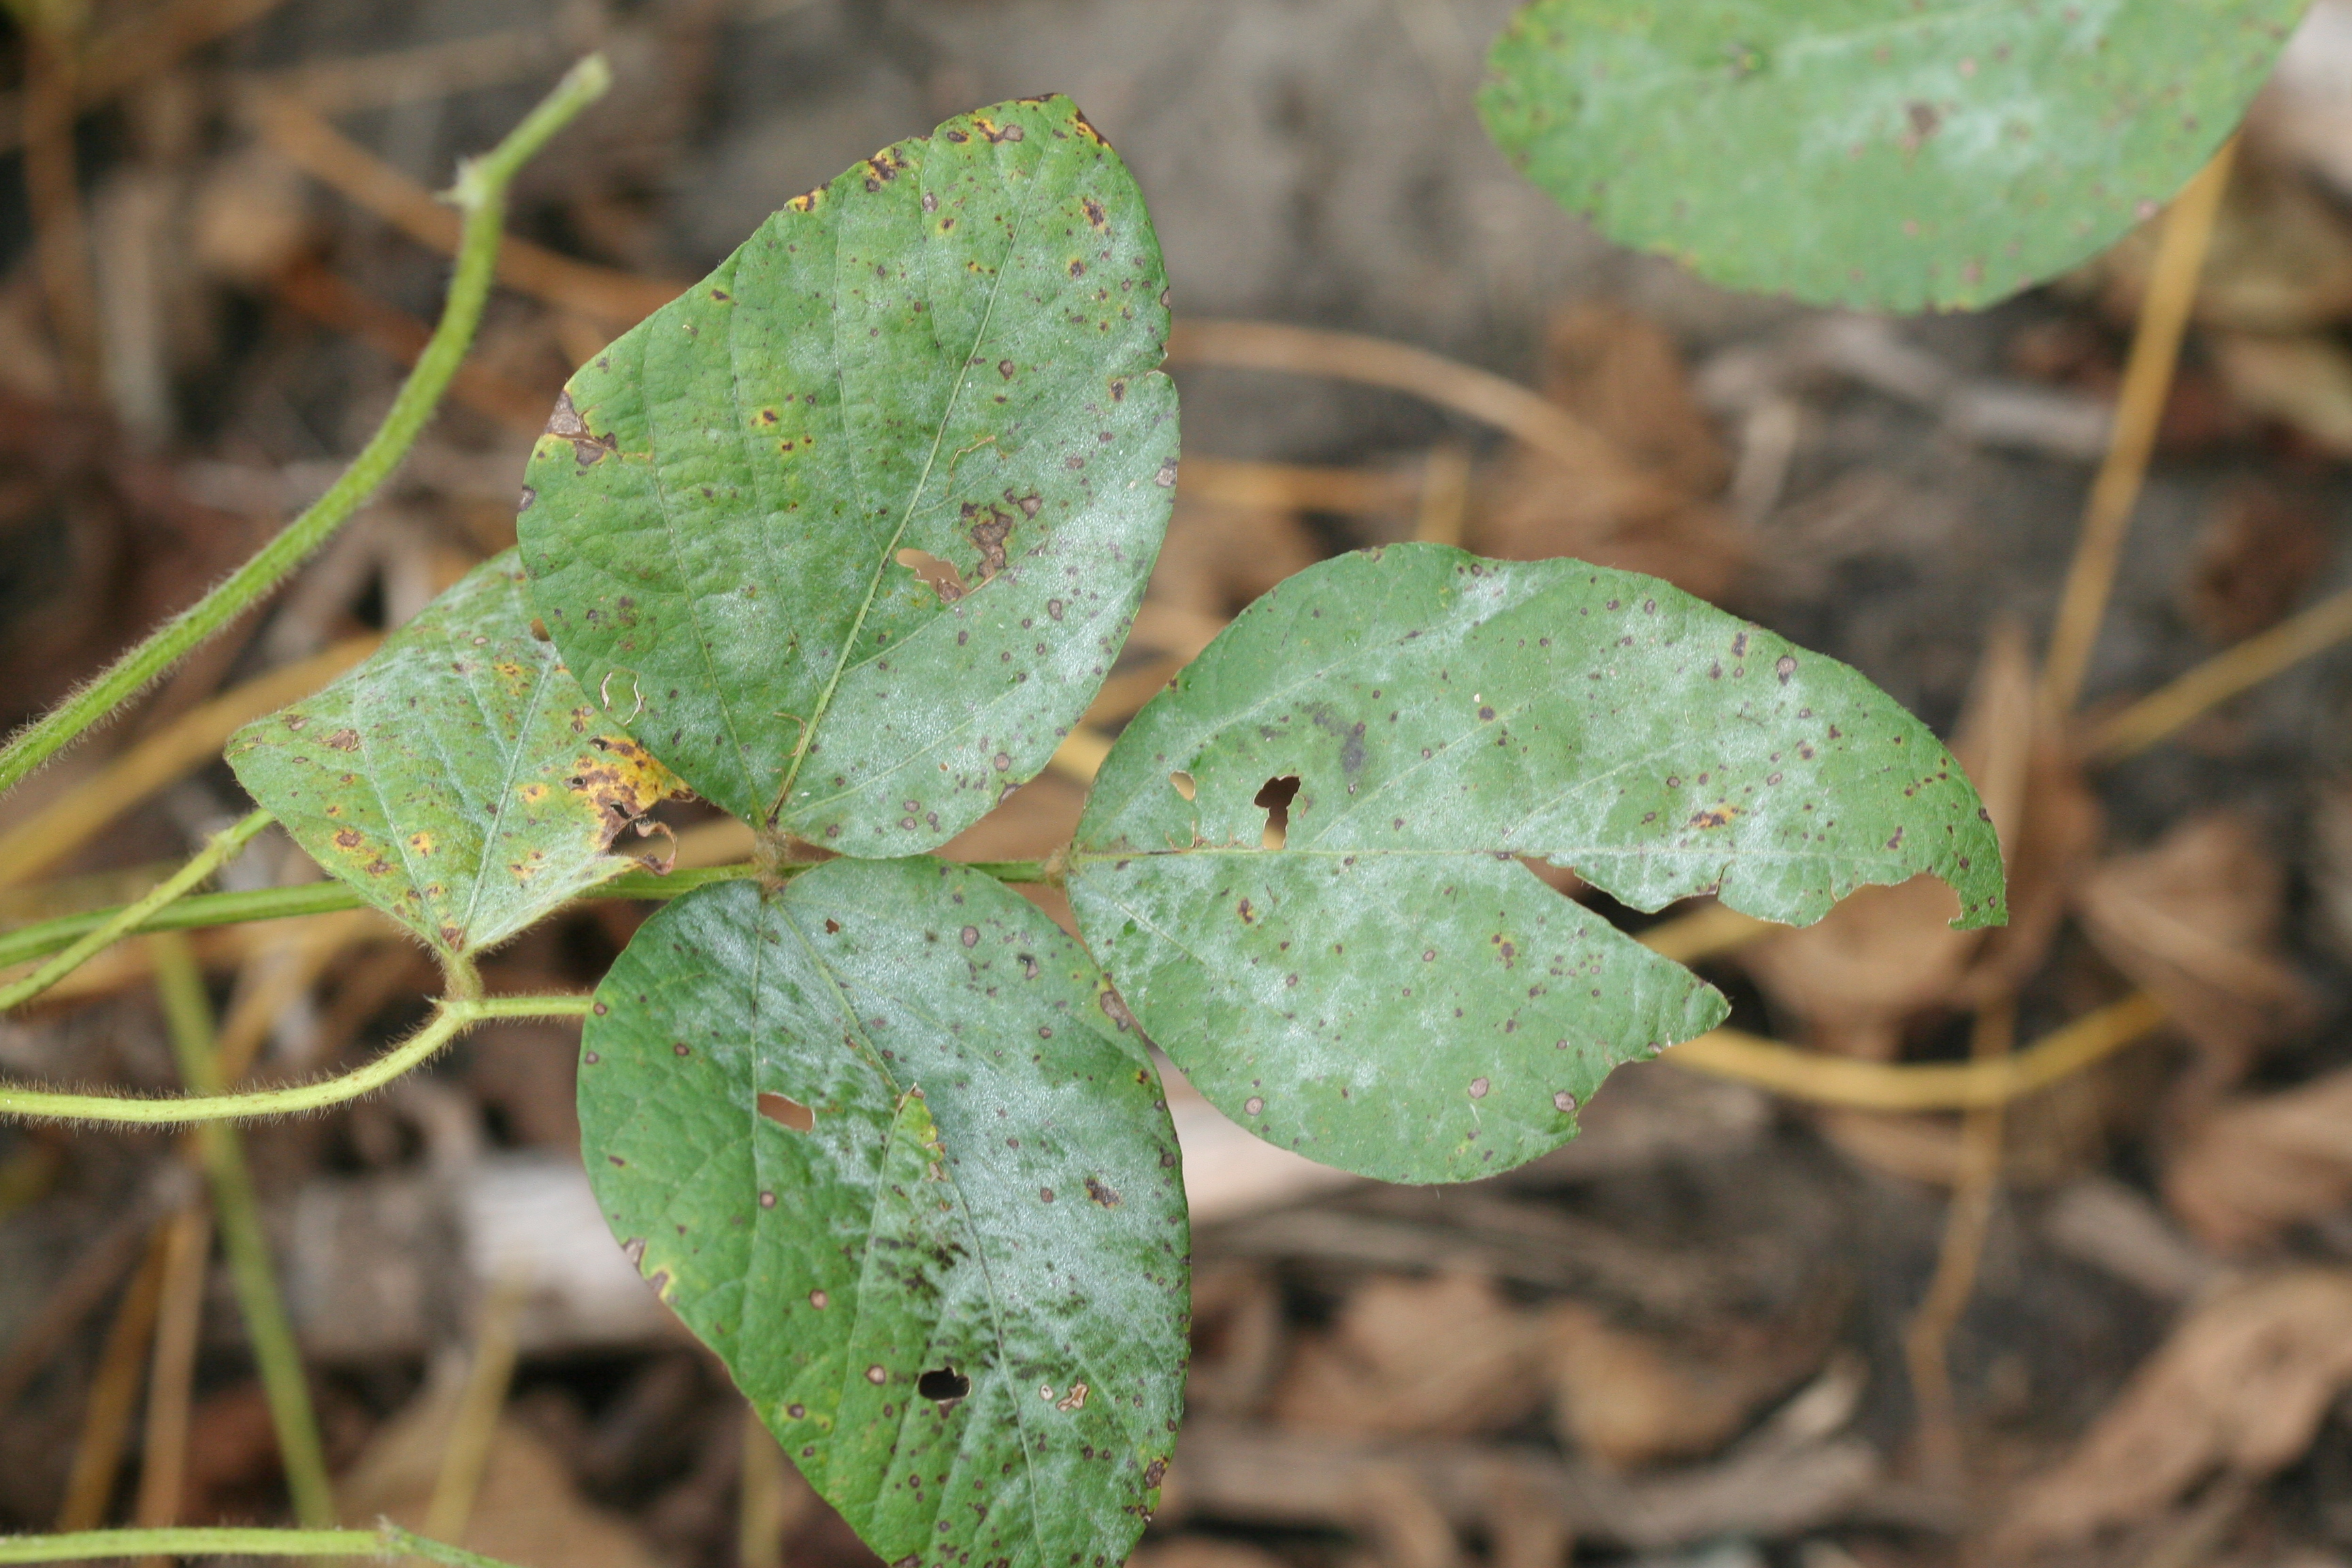 Powdery mildew appears as white, powdery fungal growth on plant tissue.